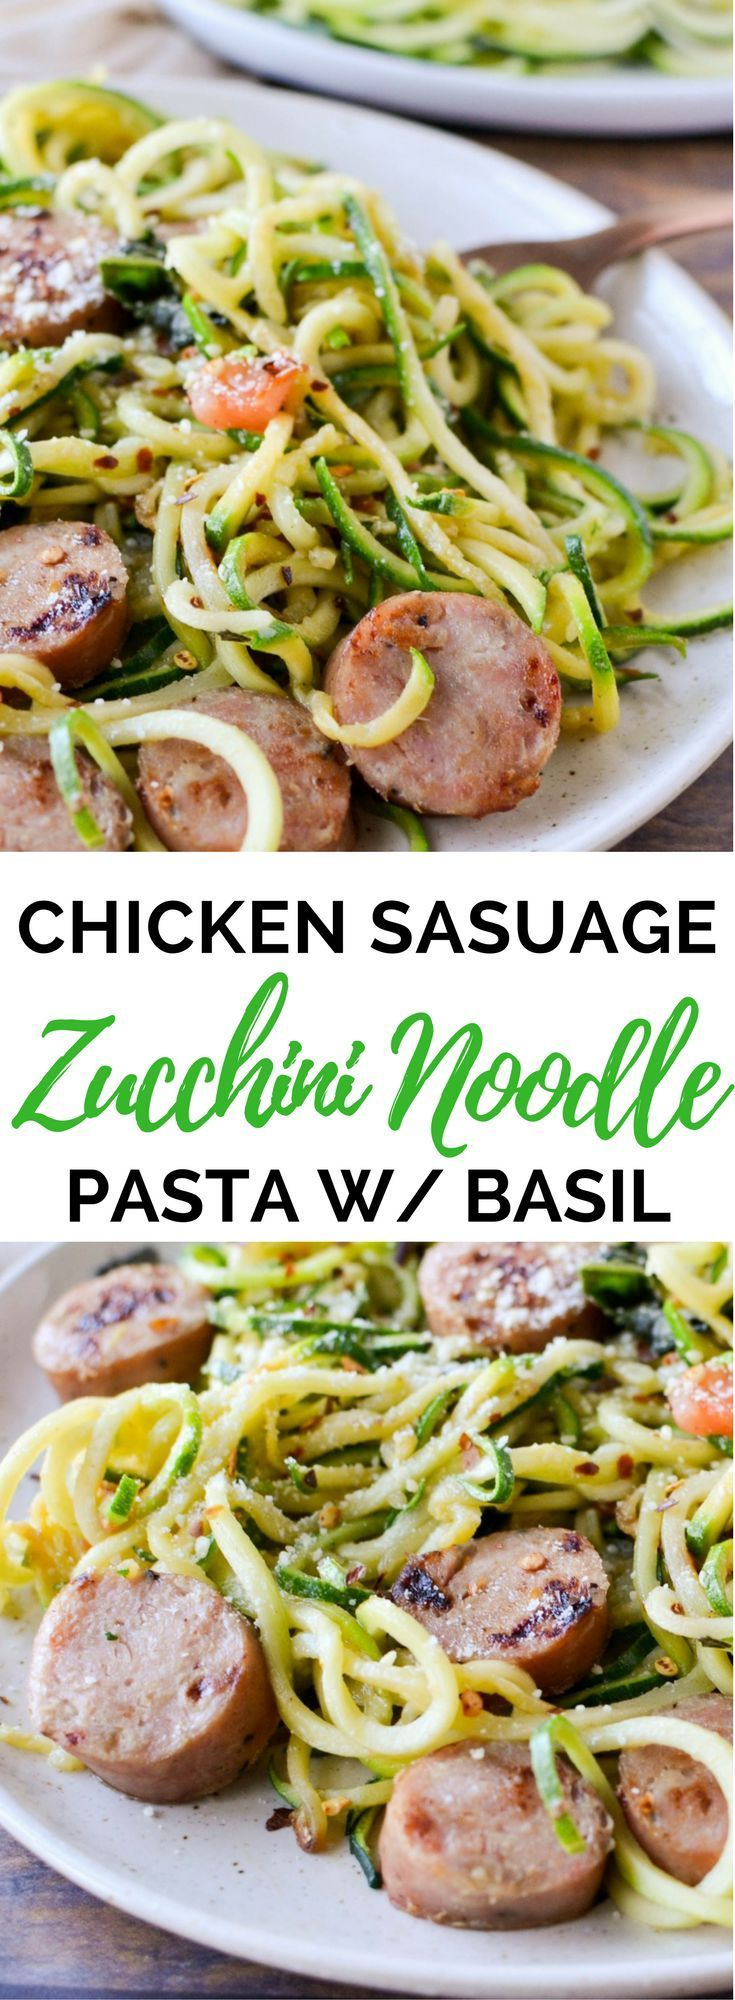 Photo of Zucchini Noodles with Chicken Sausage, Tomato, and Basil (Keto, Gluten Free) – Cooks With Soul